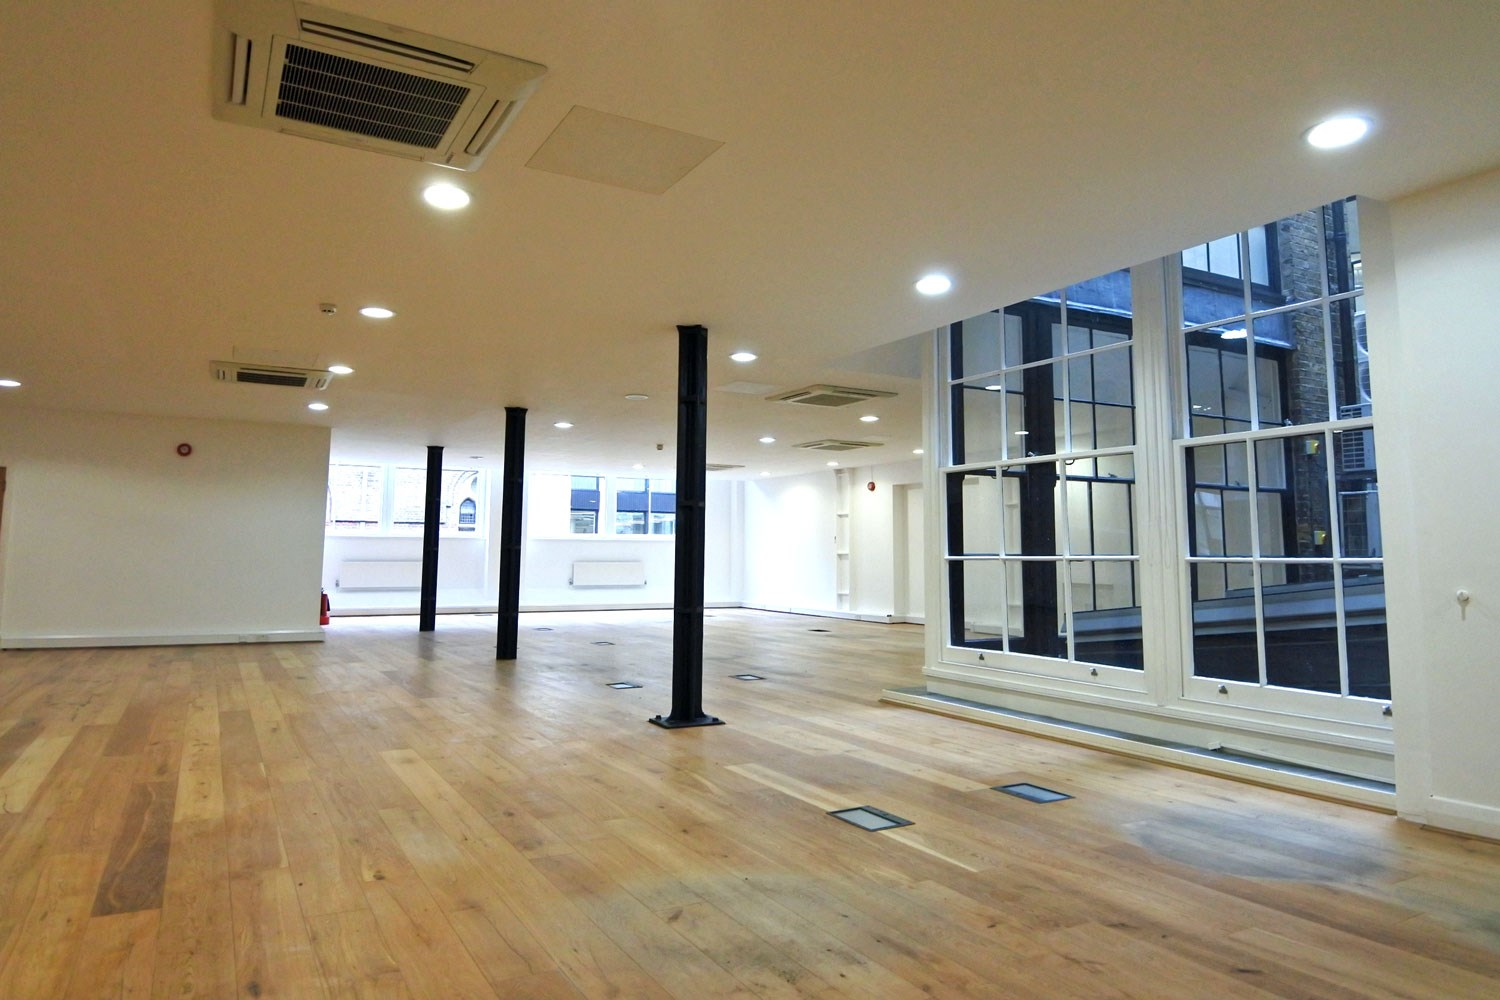 Victoria House 1 Leonard Circus First Floor EC2A 4DQ Shoreditch Office Internal 8